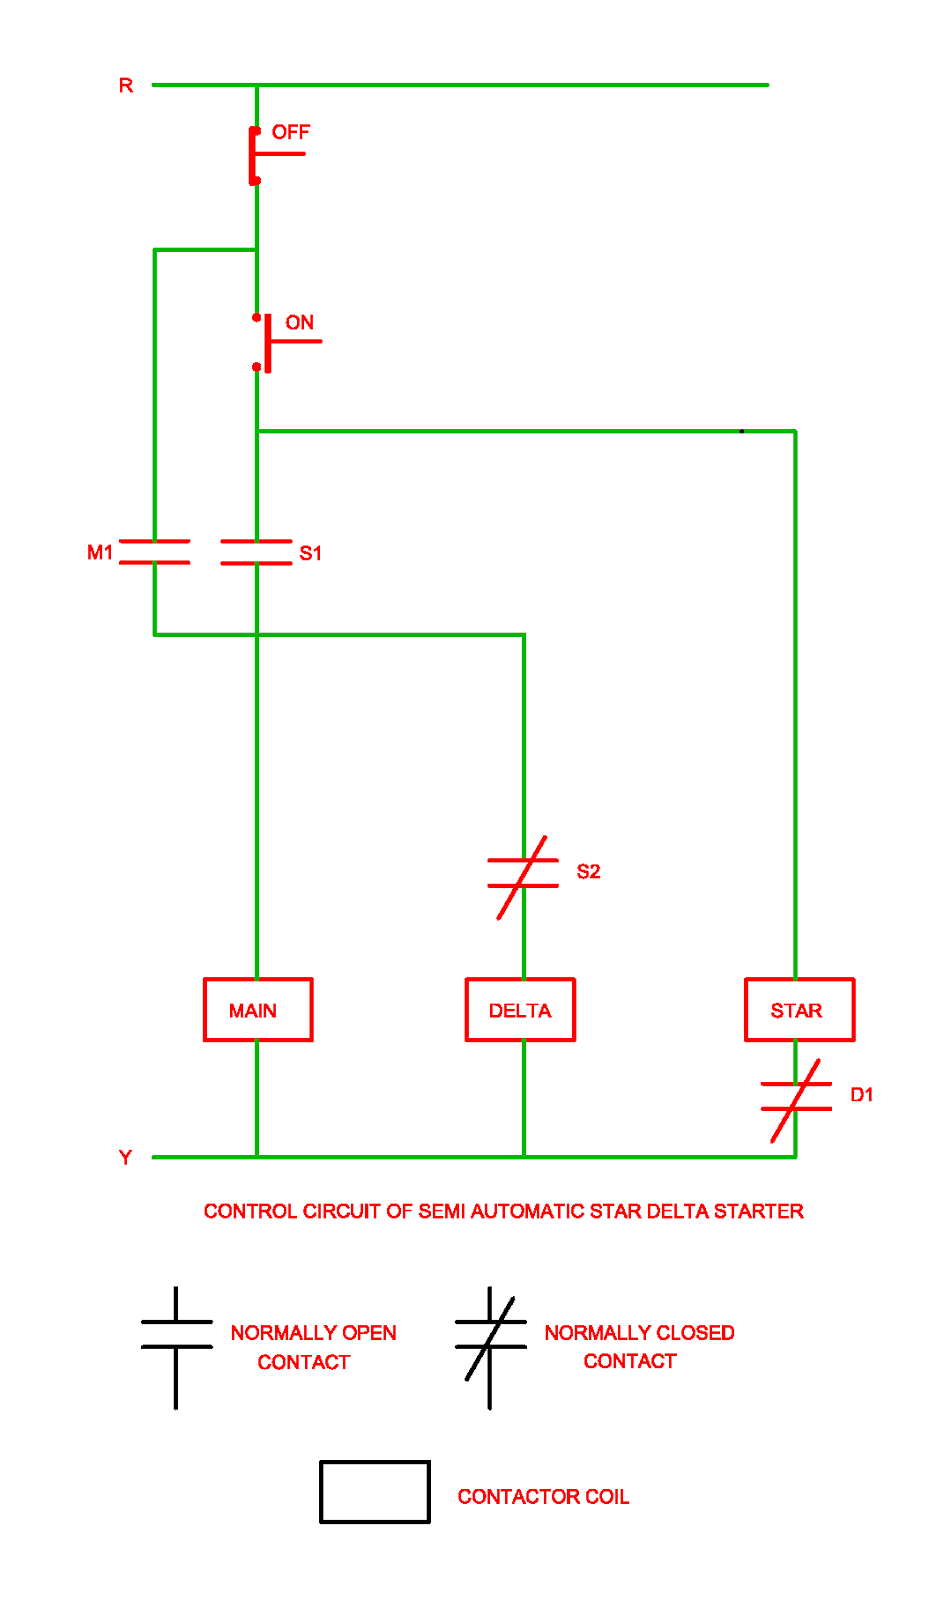 Control Circuit of Semi Automatic Star Delta Starter | Electrical Revolution